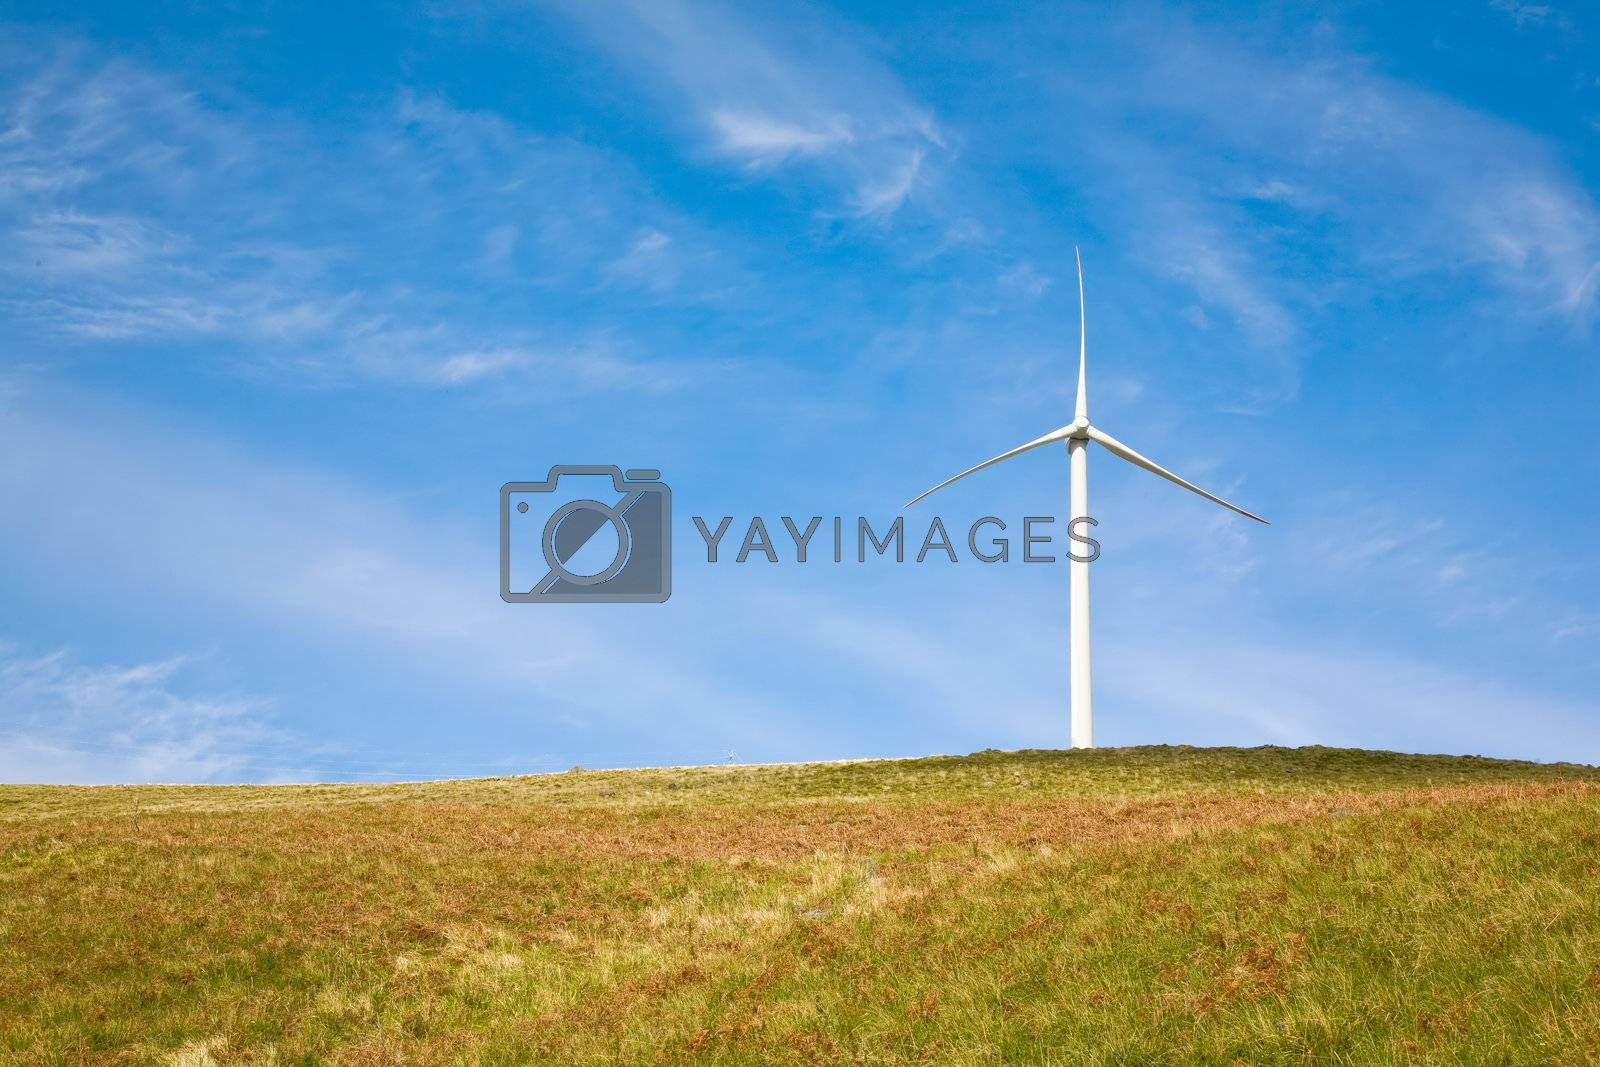 Royalty free image of Wind Tower by ajn